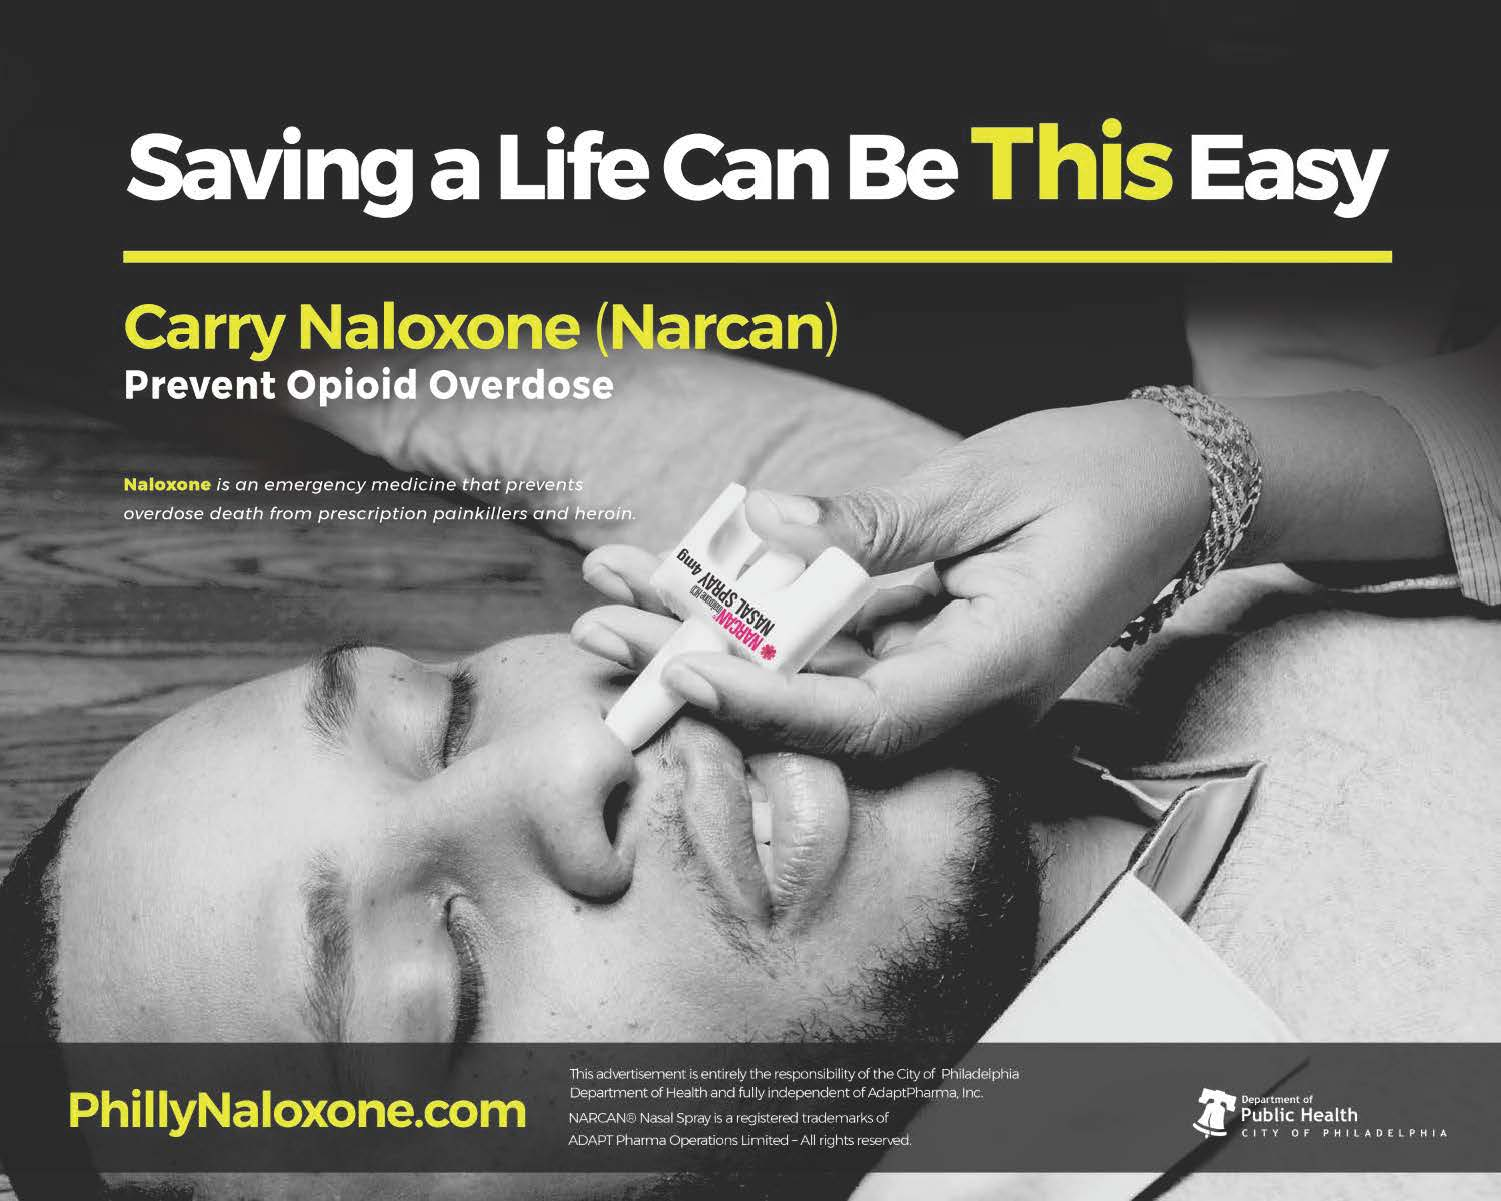 Philadelphia has used billboards and social media to encourage citizens to carry life-saving naloxone